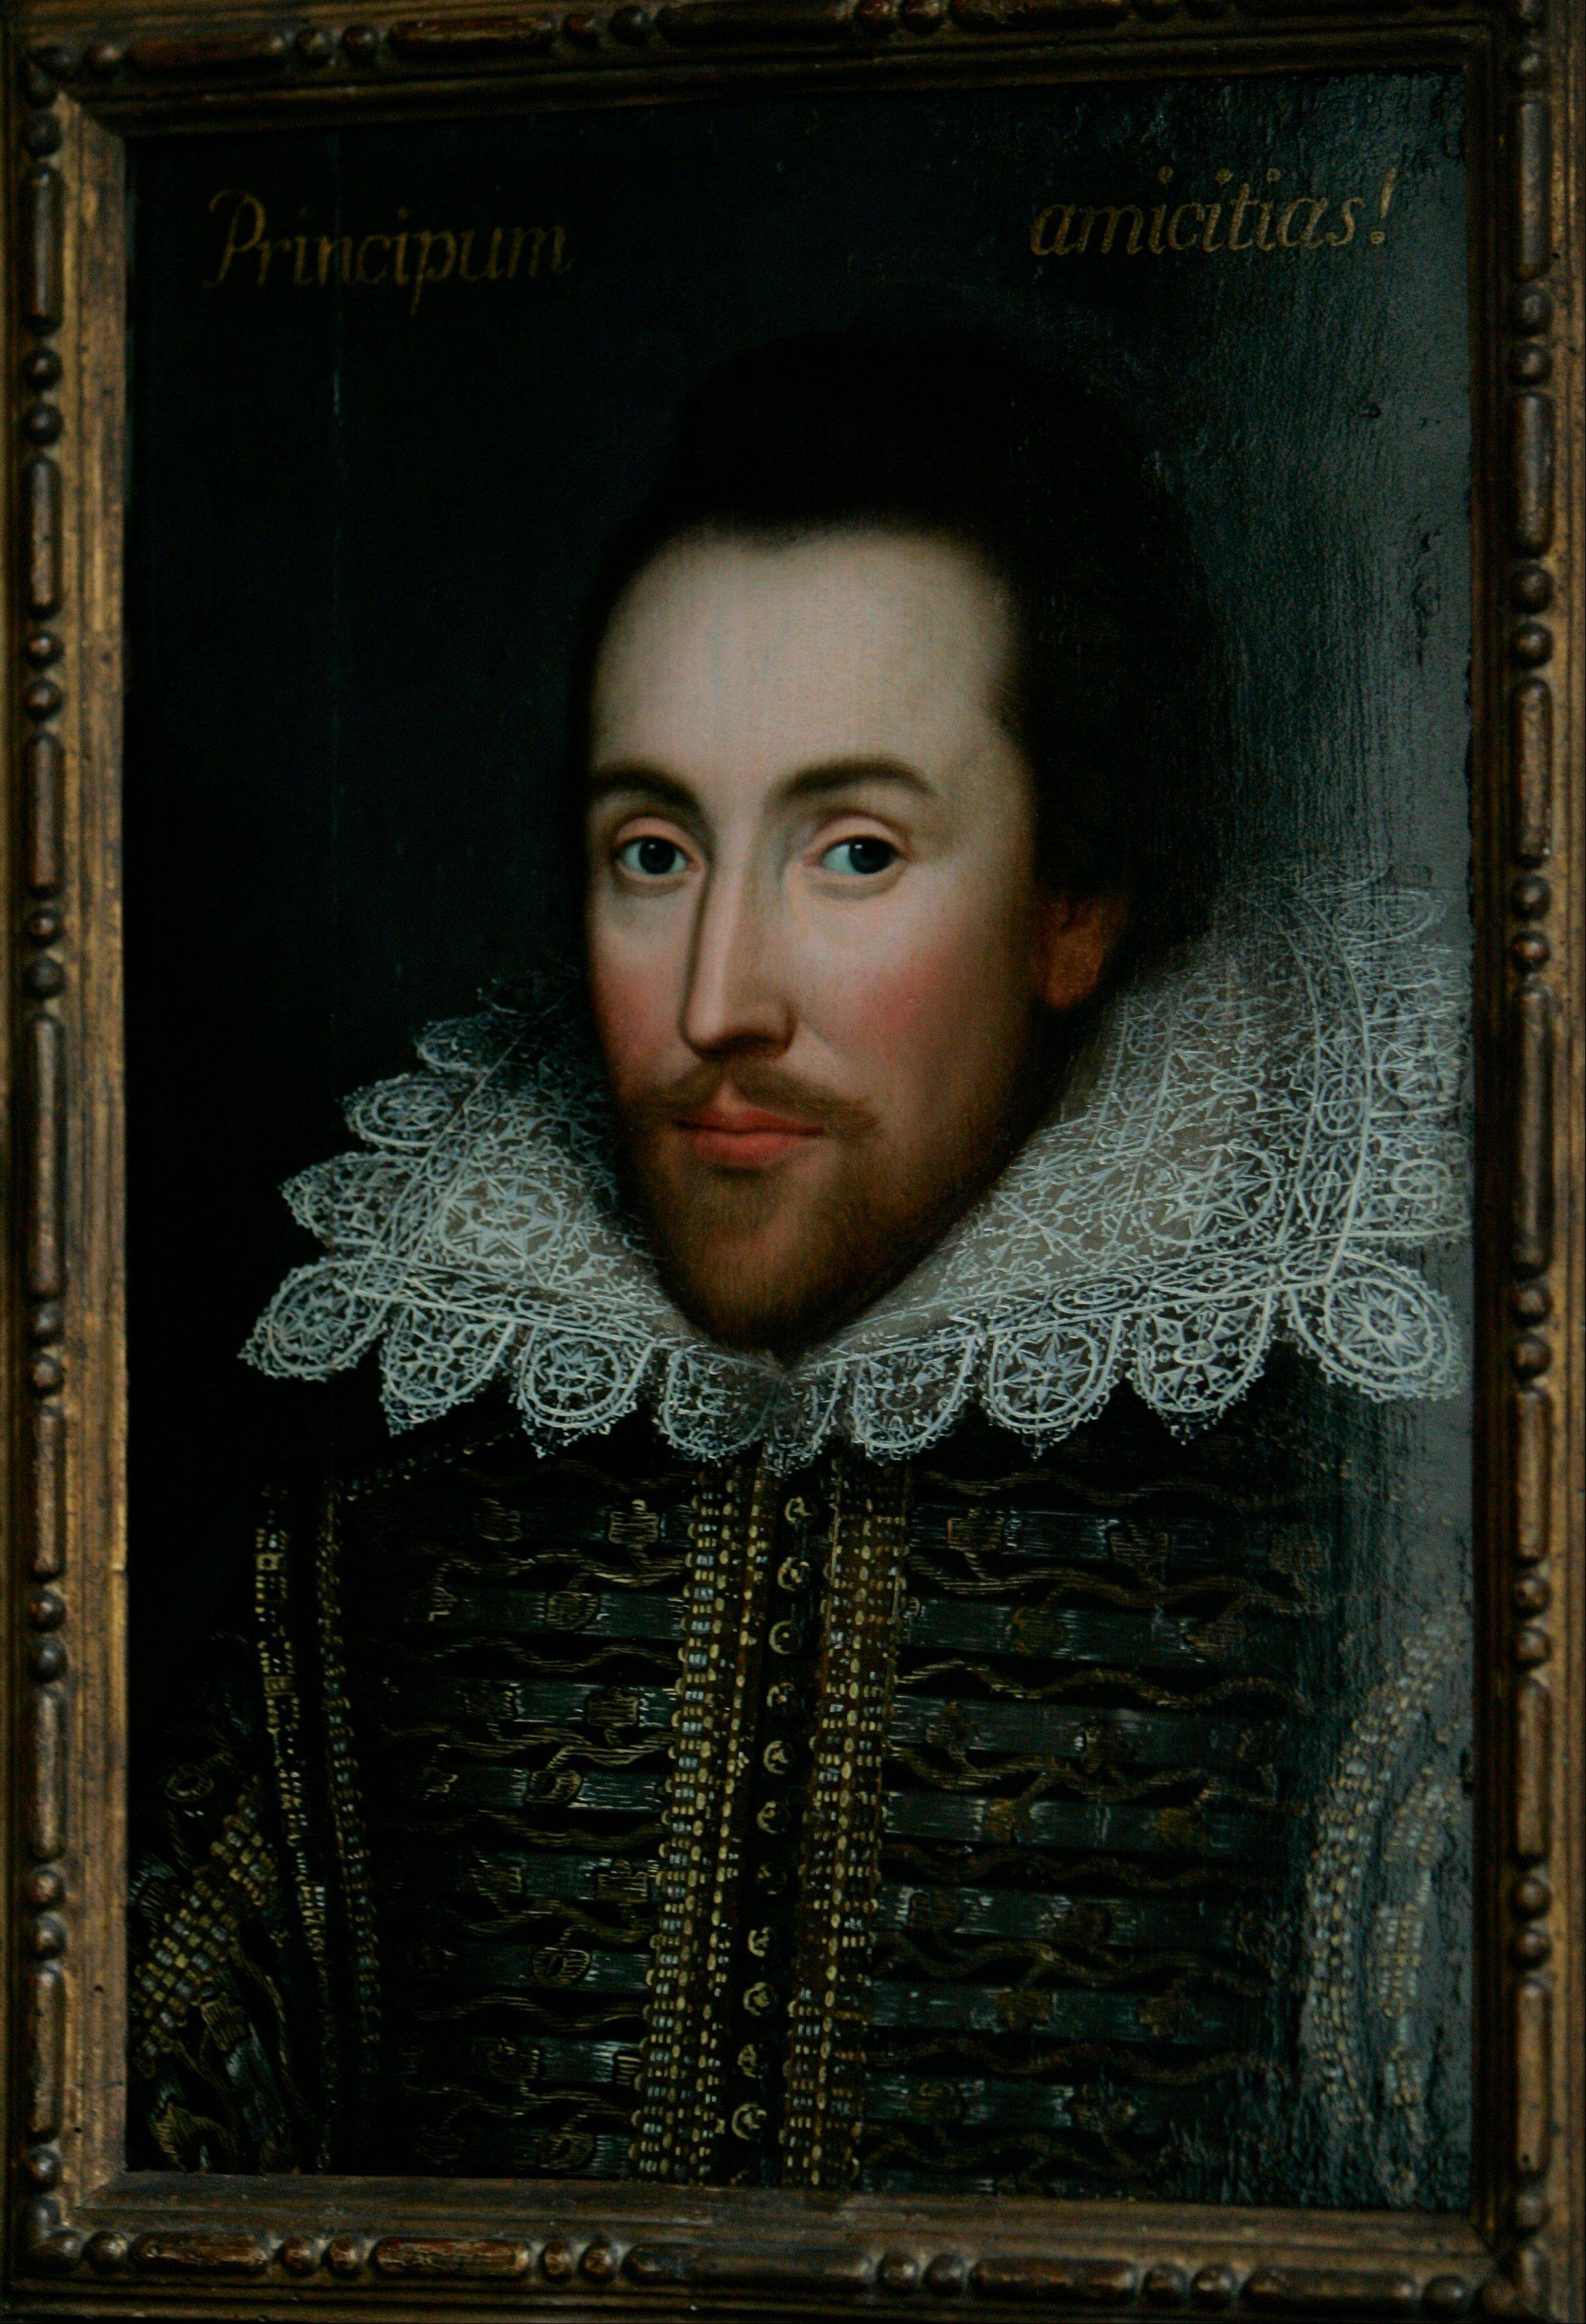 New research depicts William Shakespeare as a grain hoarder, moneylender and tax dodger who became a wealthy businessman during a time of famine.